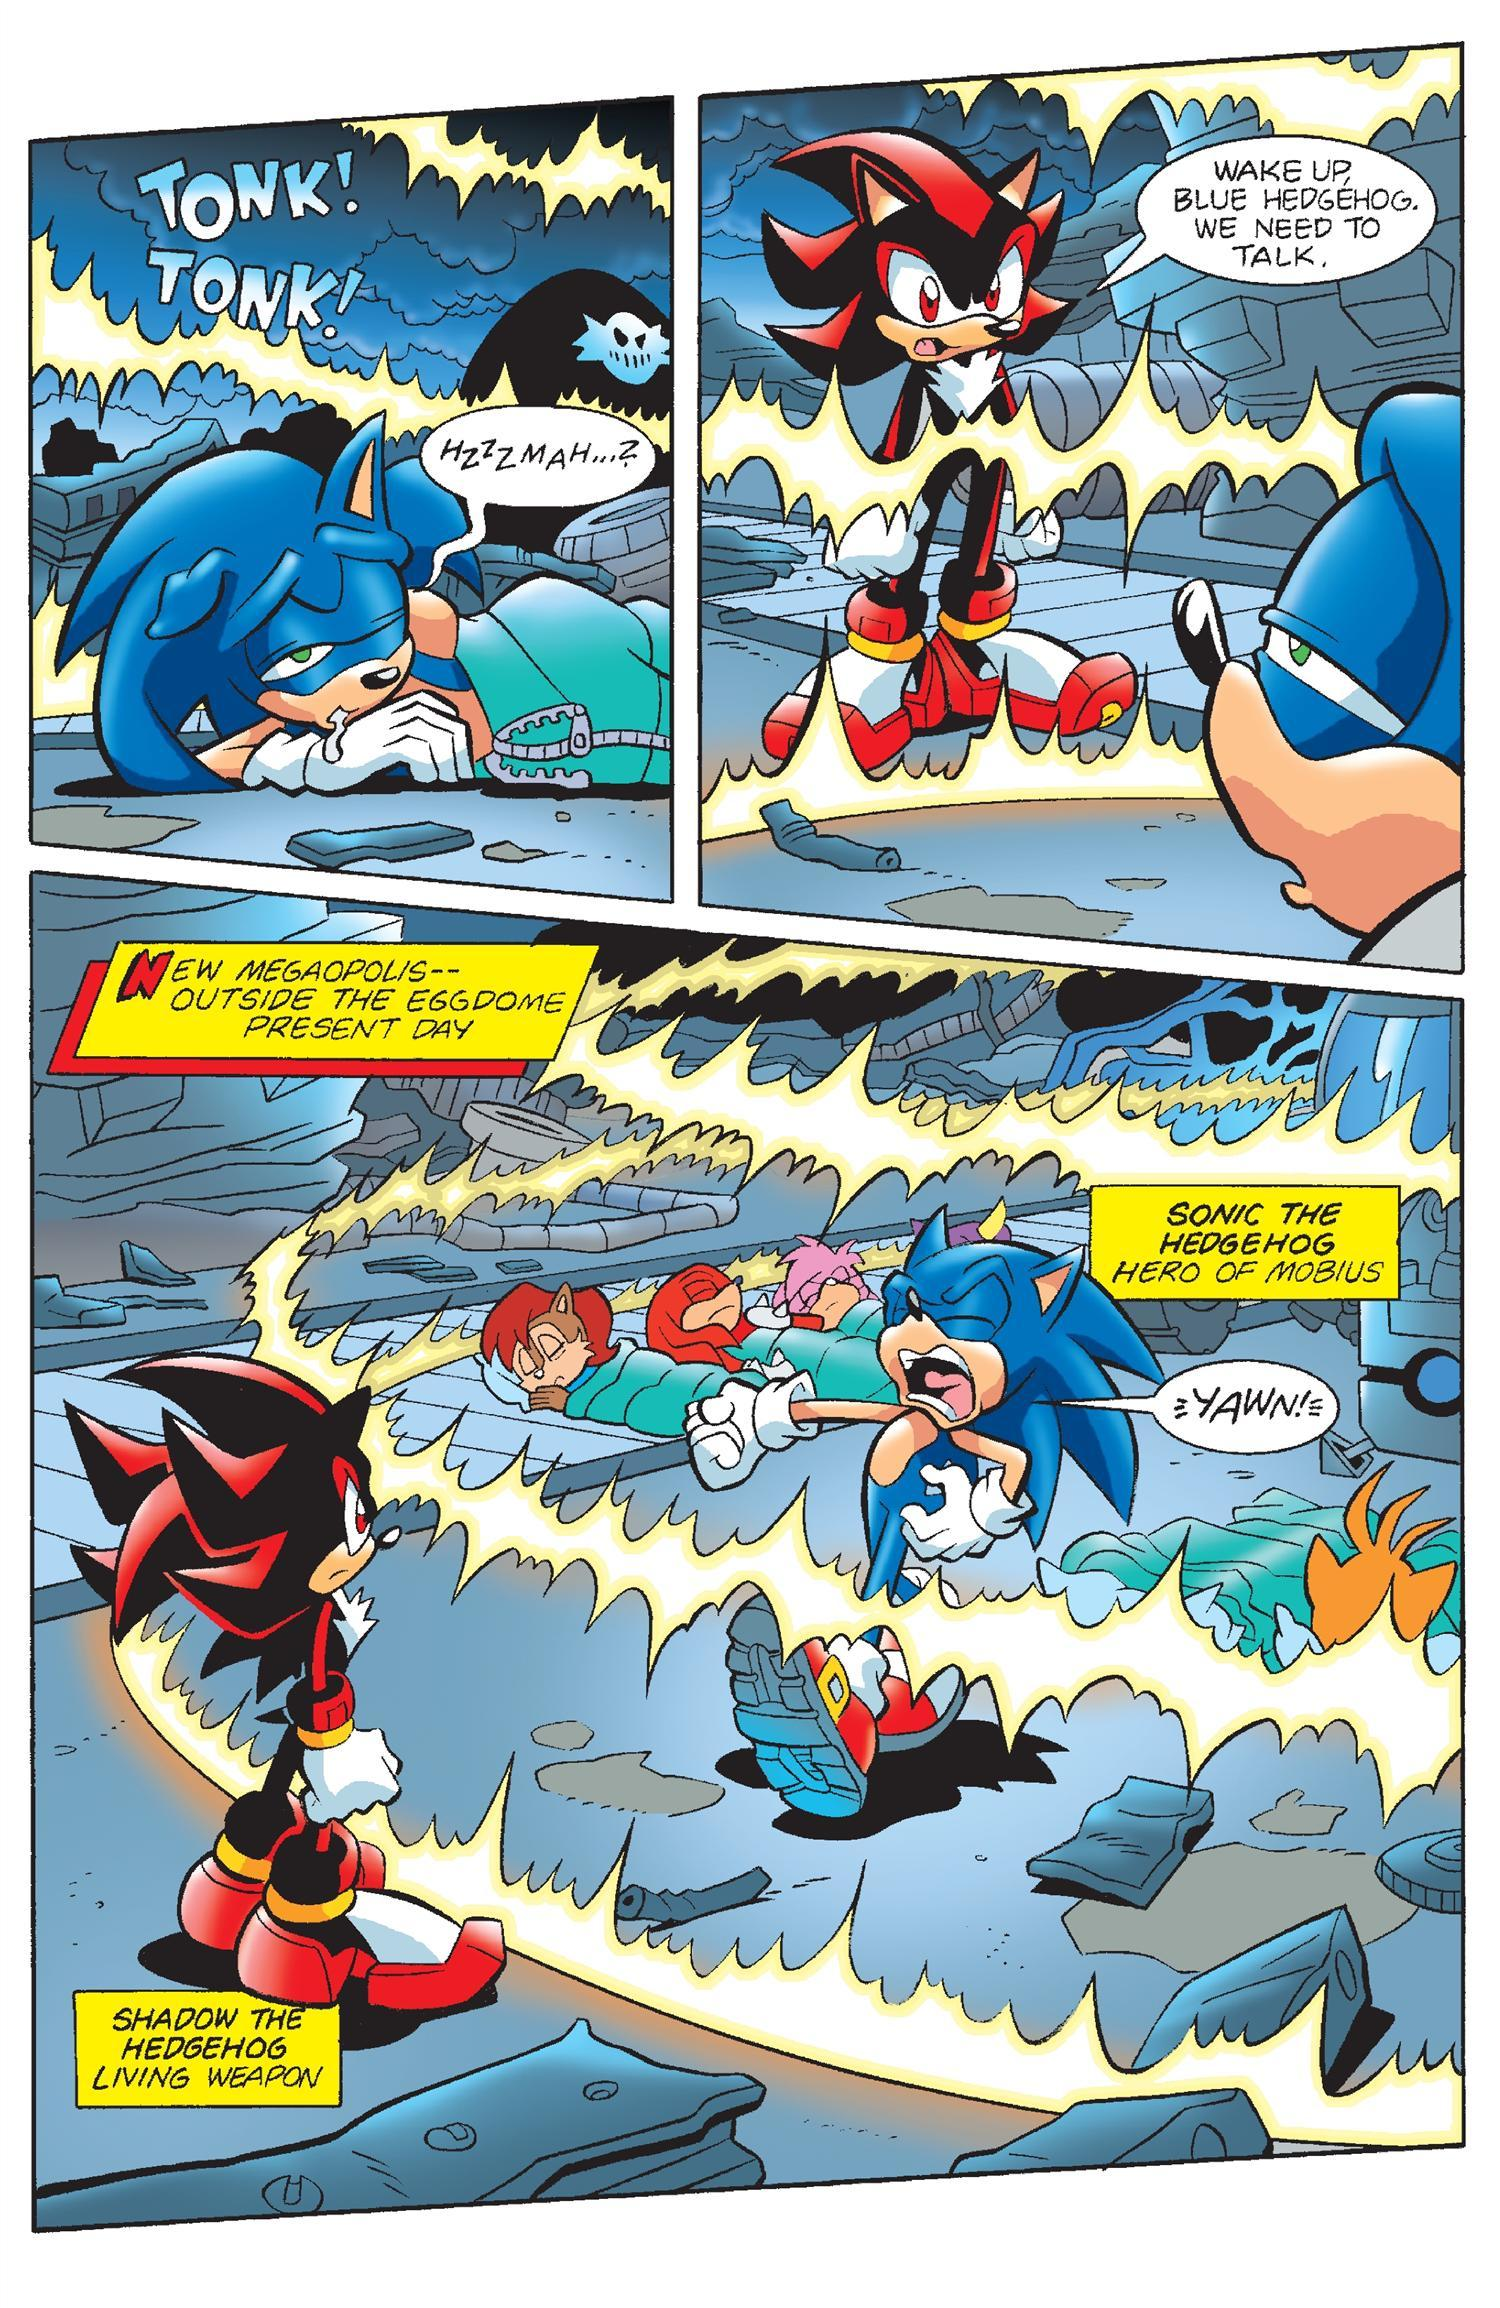 http://img1.wikia.nocookie.net/__cb20140316204505/sonic/images/9/95/Su2_scan3.jpg